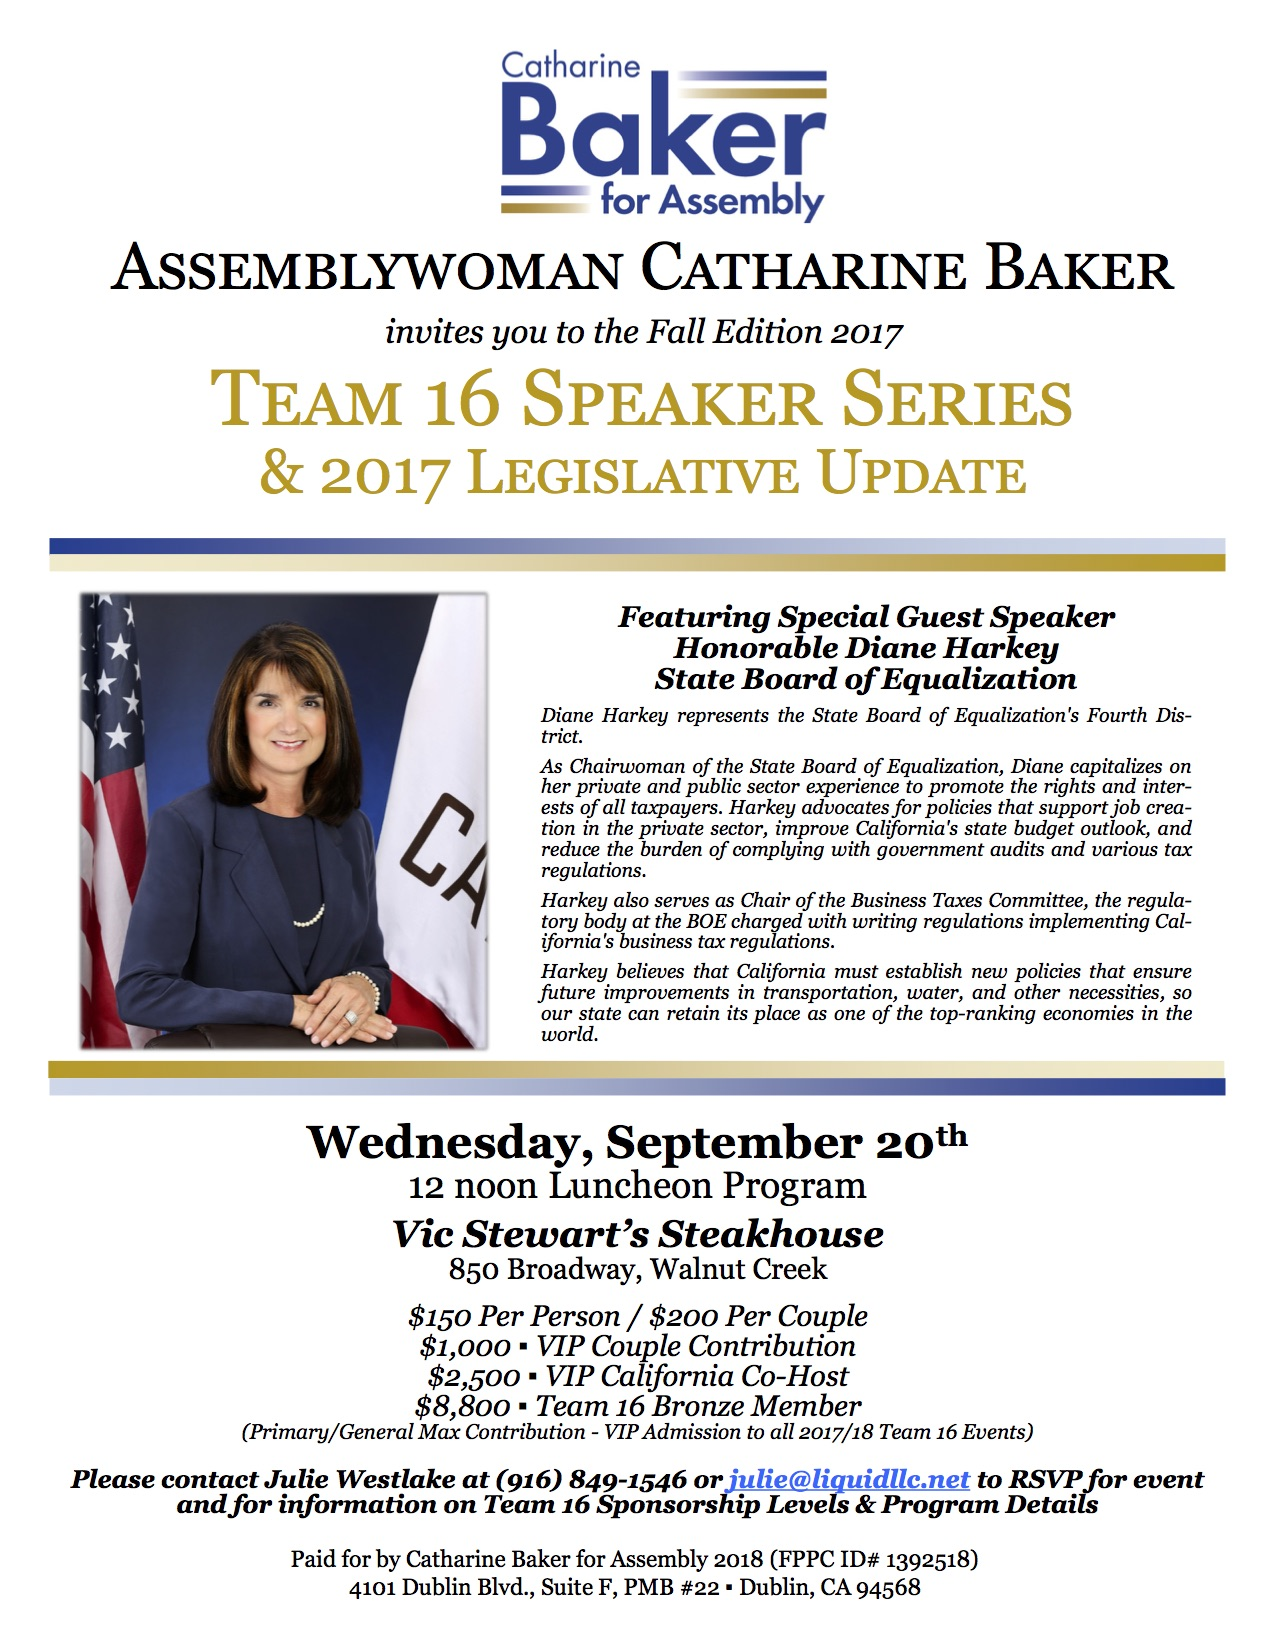 Speaker Series Fall Luncheon Invite 09.20.17.jpg